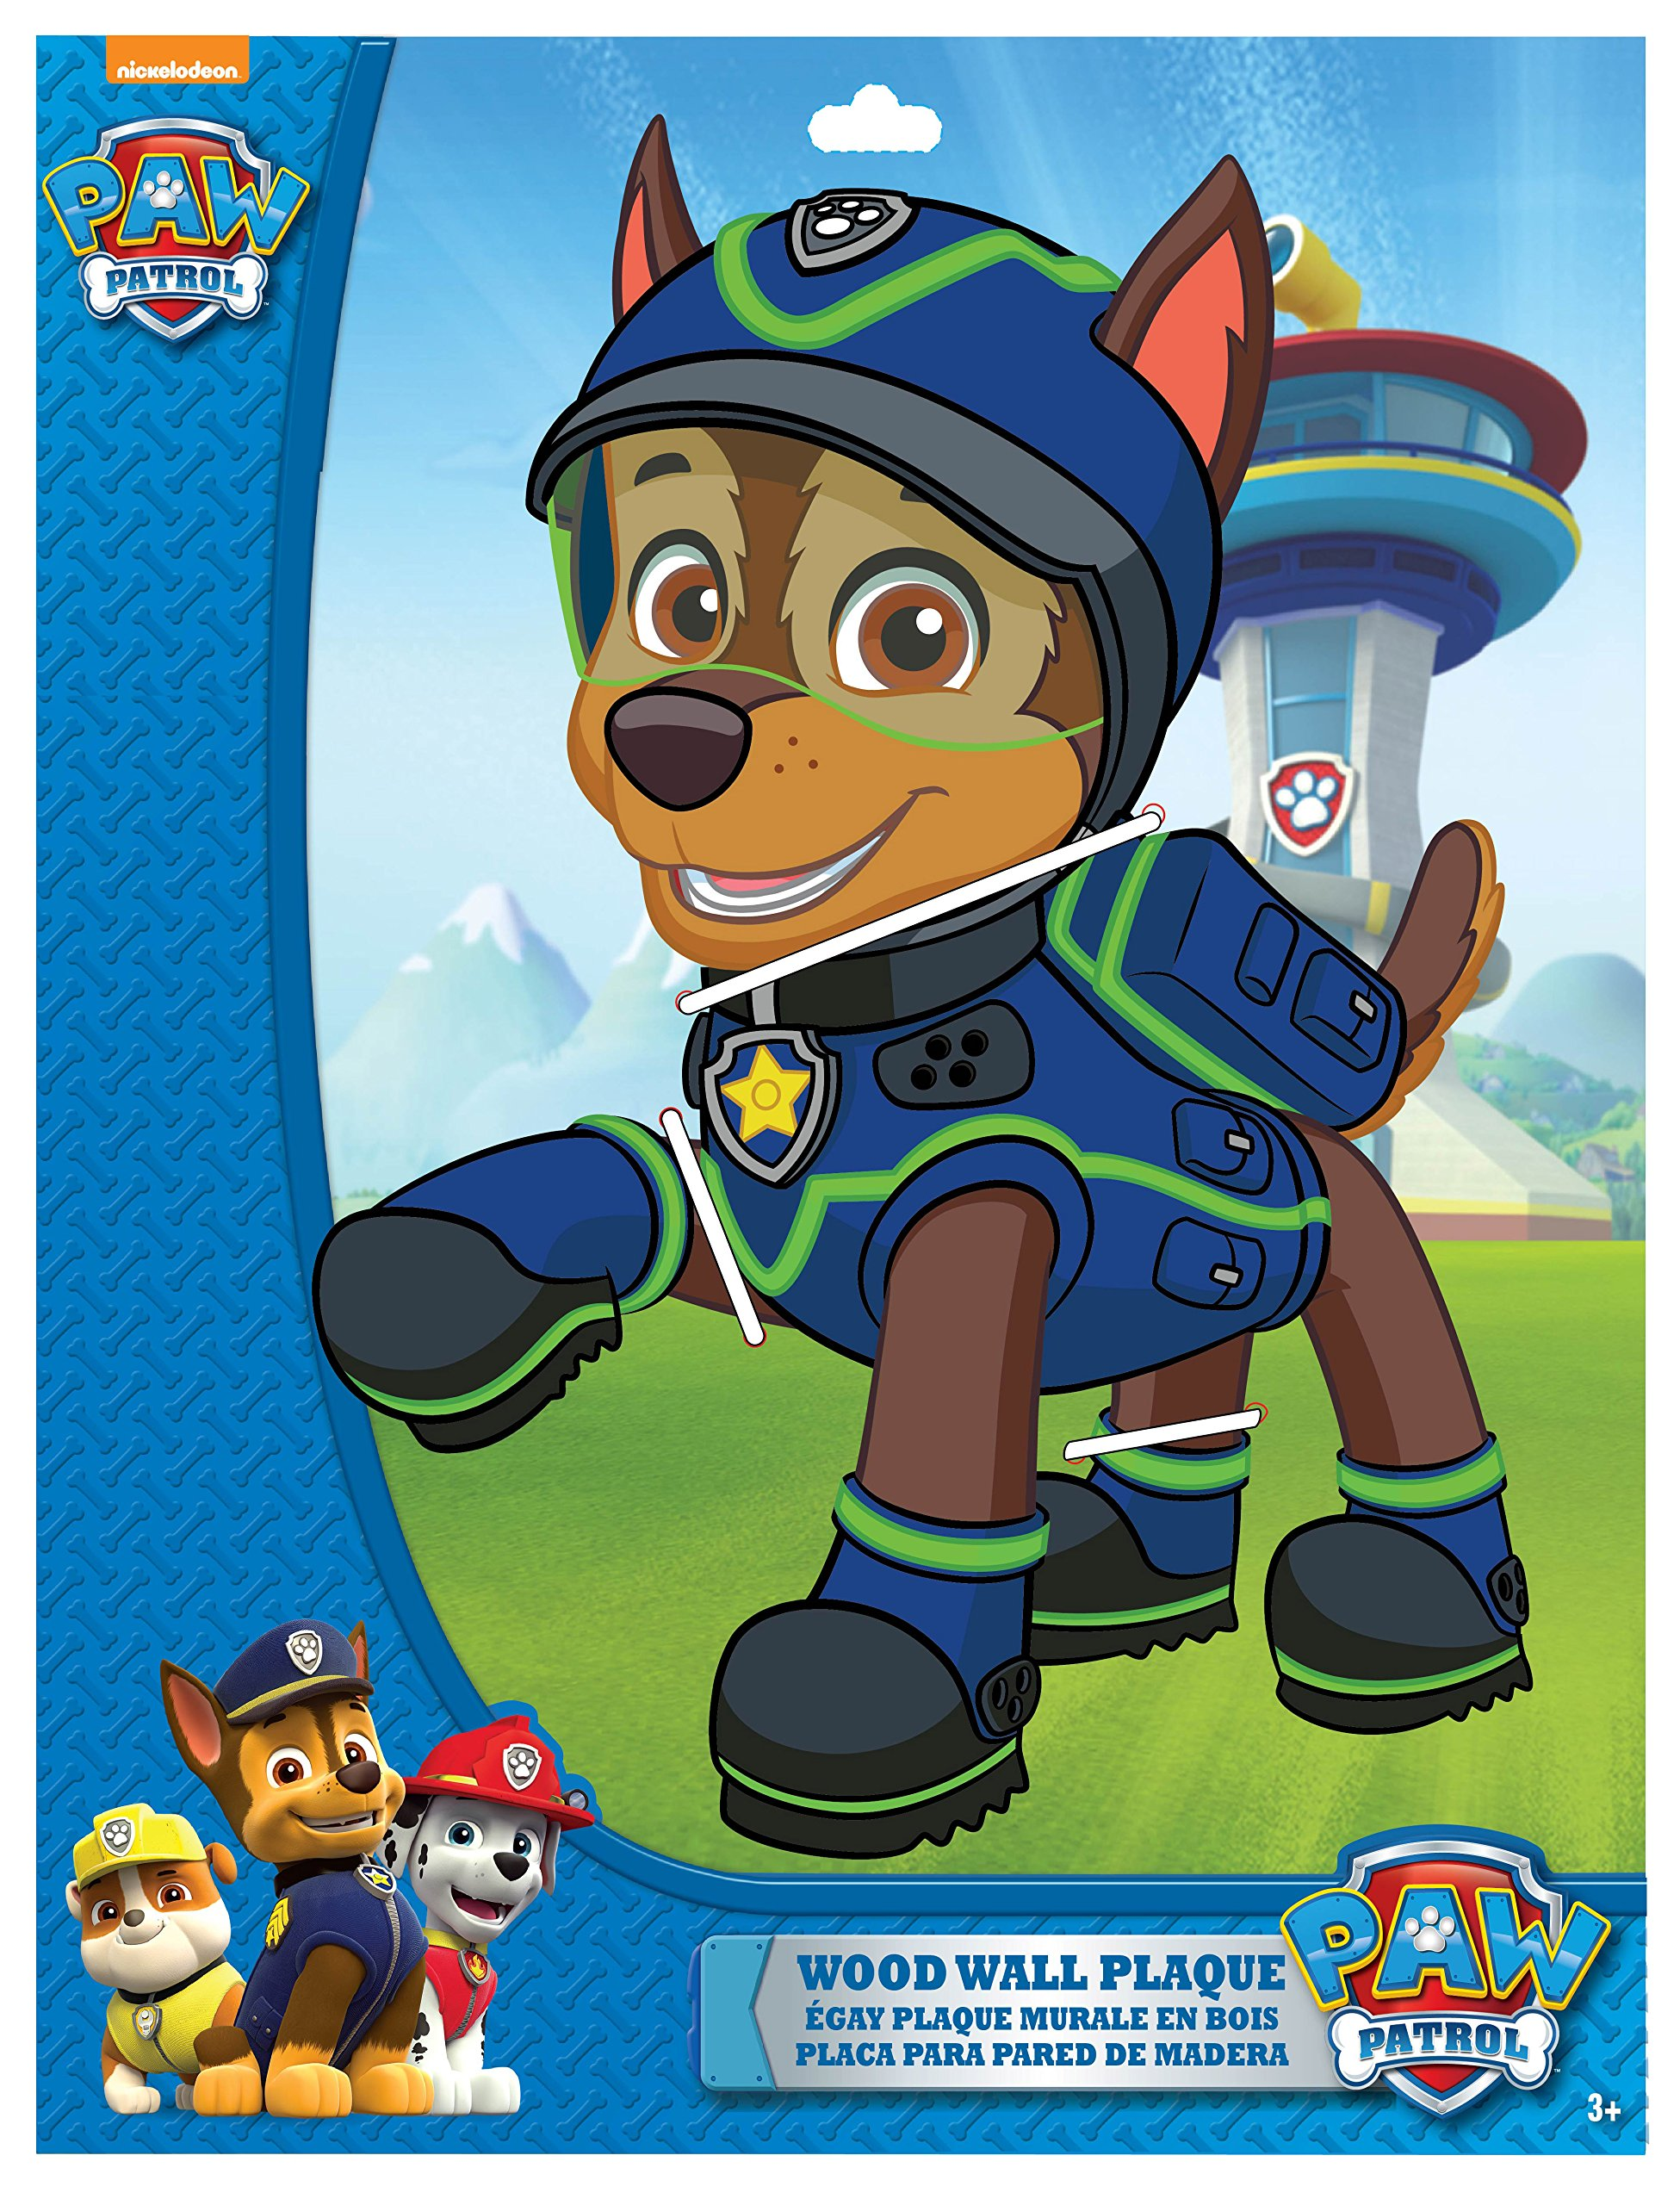 Edge Home Products Chase Paw Patrol 13 Inch 2-Layer Mdf Diecut Plaque, Blue